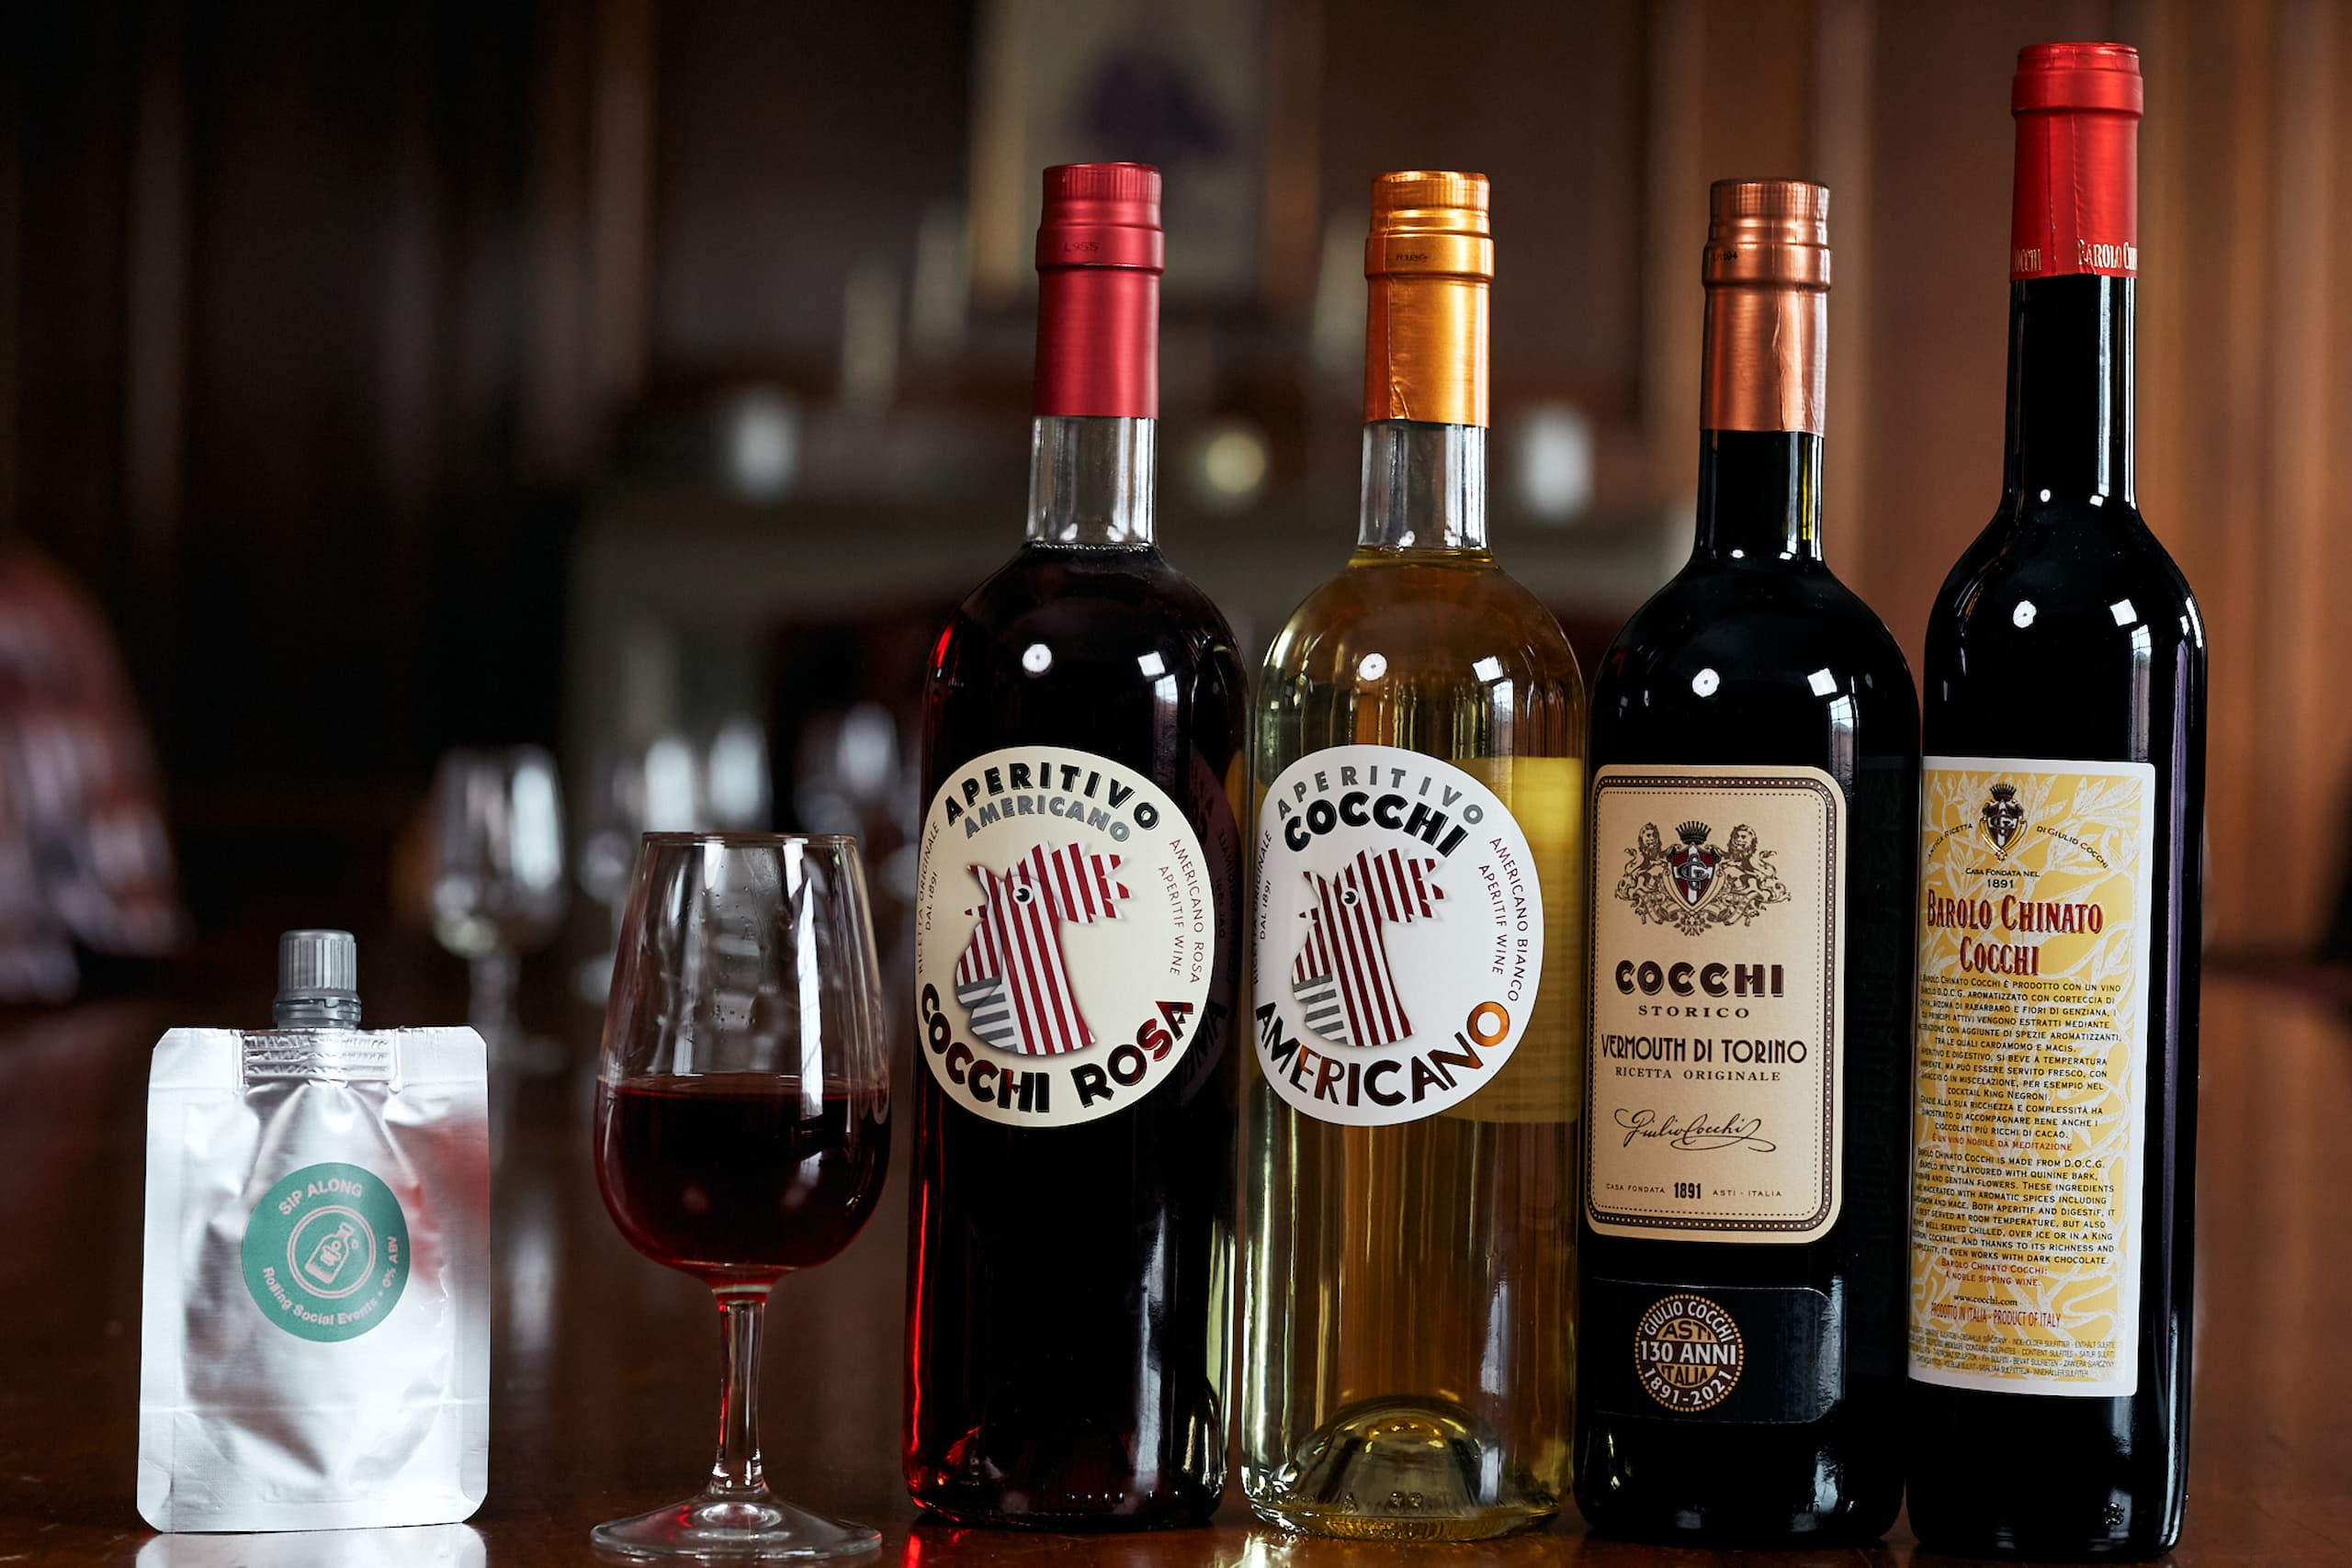 Aperitivo Sip Along with Cocchi aromatic wines